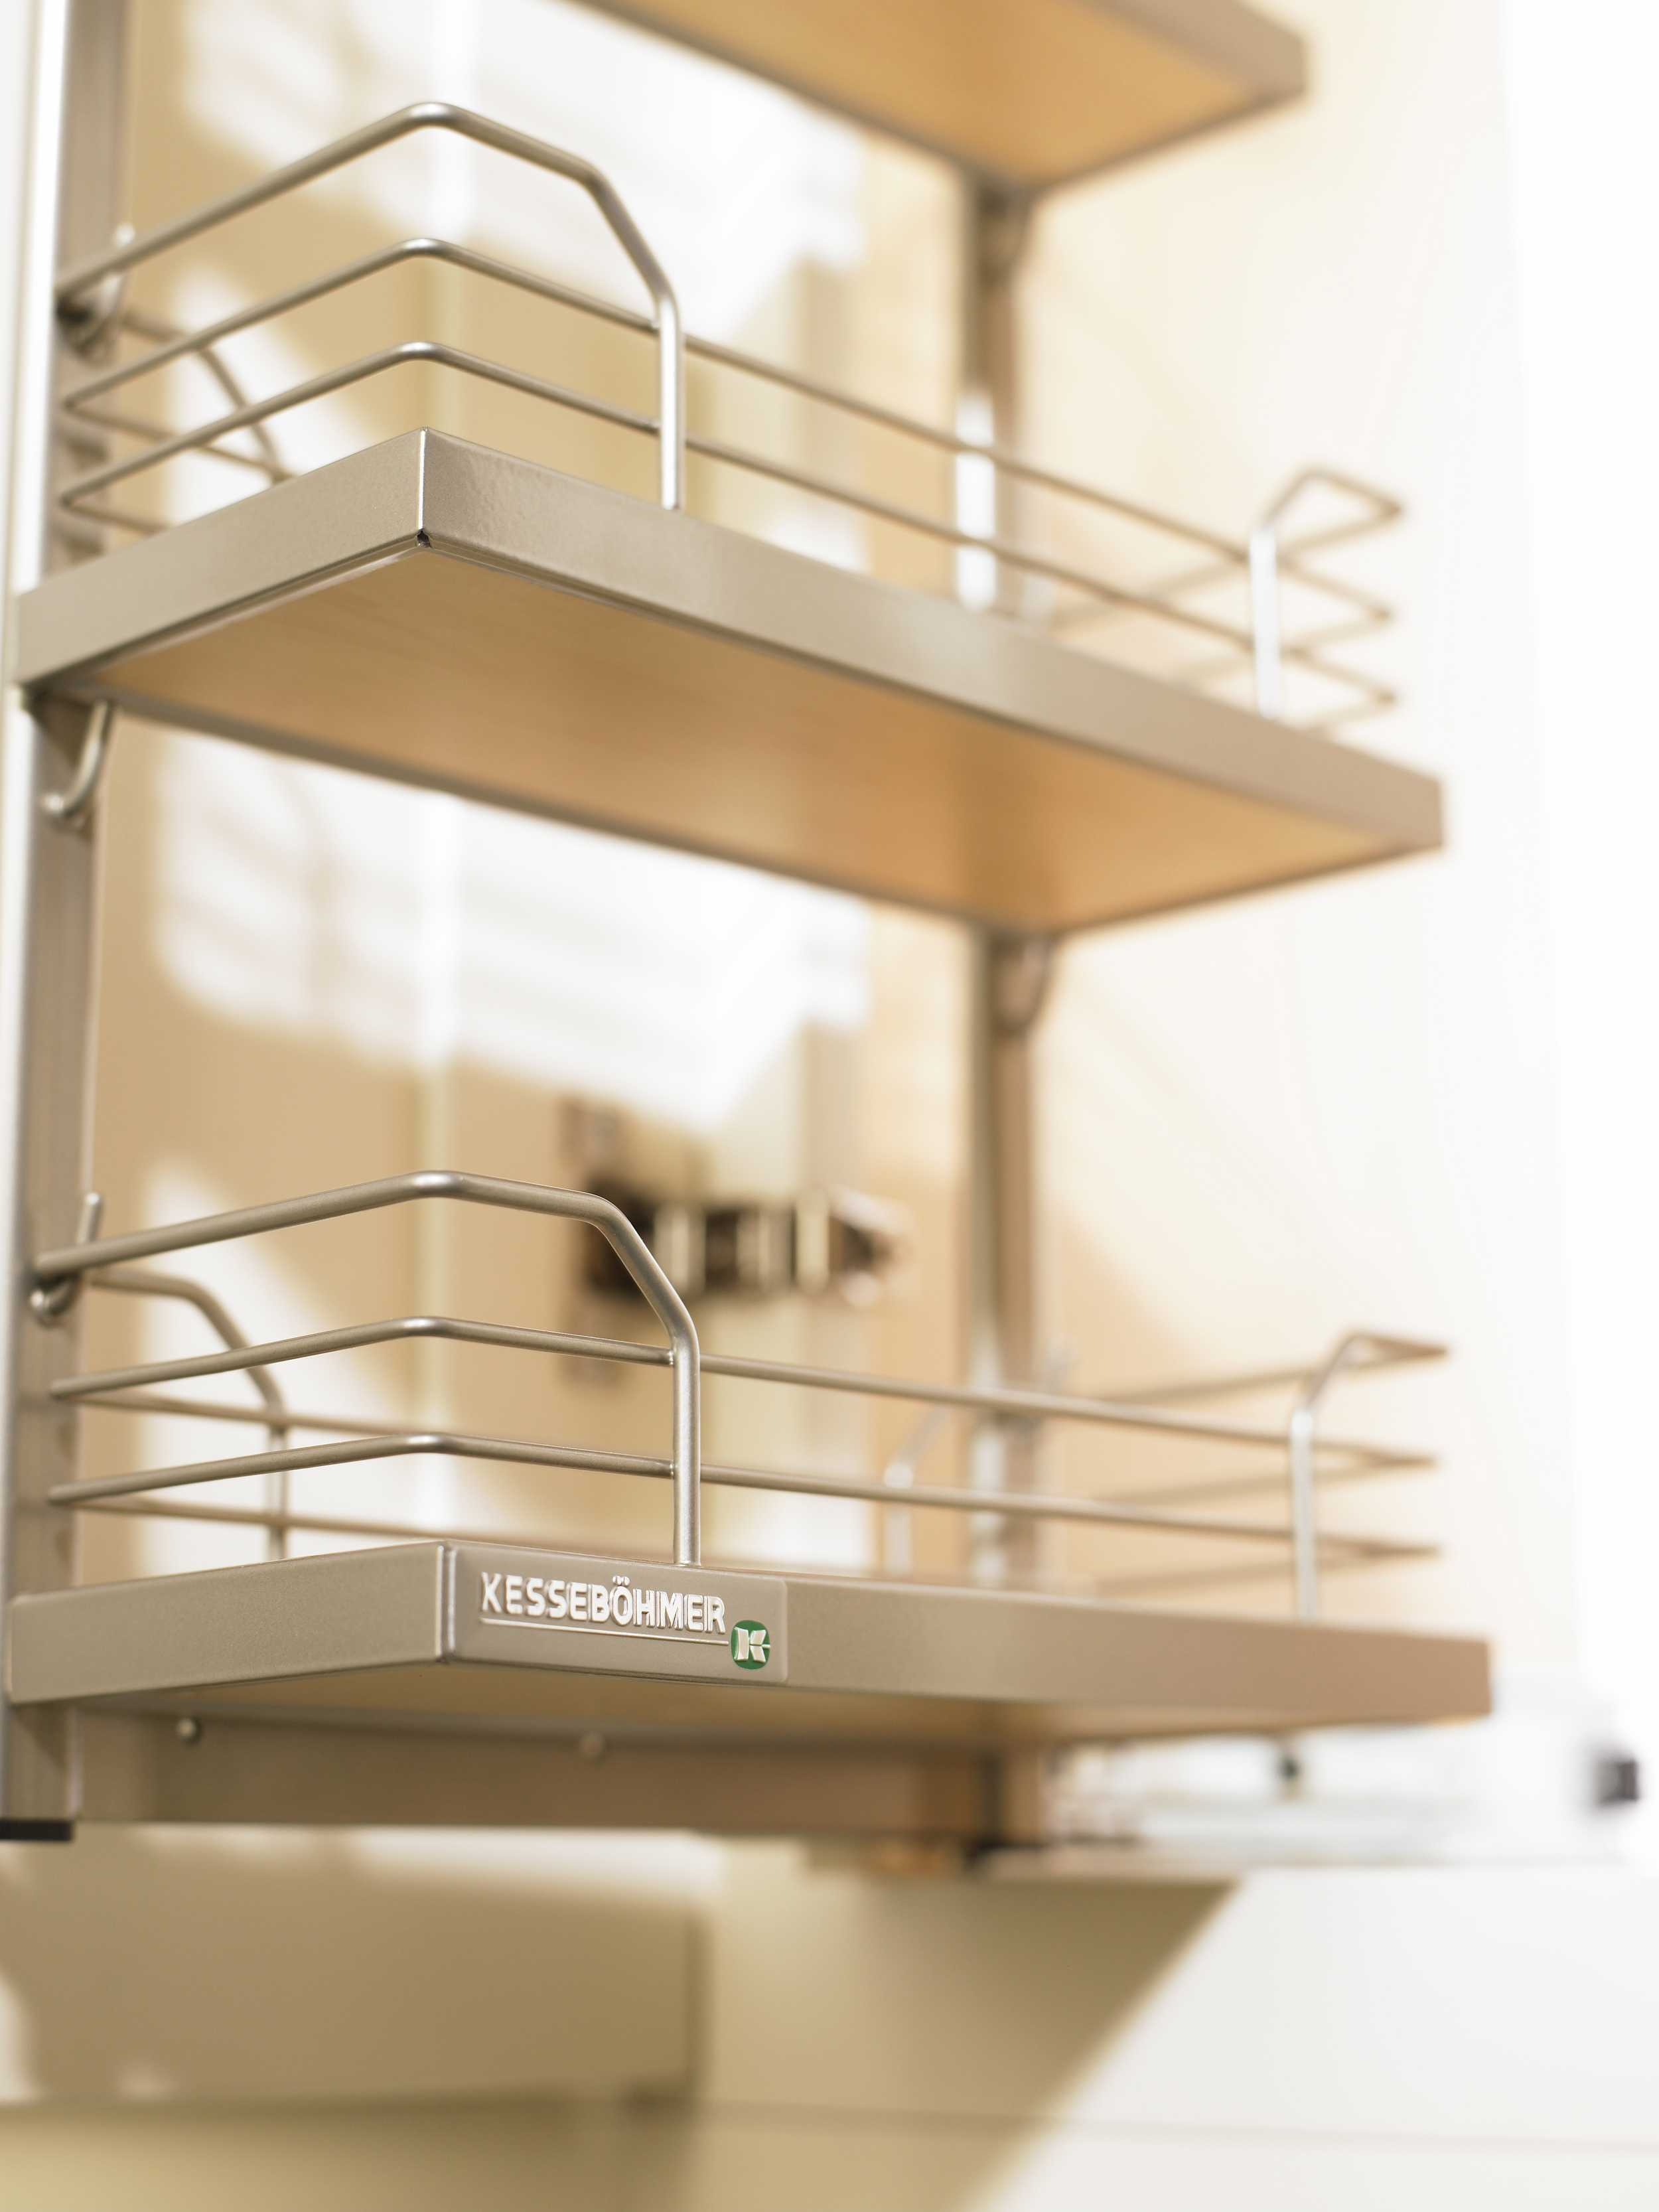 Our pullout spice rack is heavy duty and easy to install. It's non slip shelves will keep all your spices right where you left them. Choose from door mounted or pullout version-either way you'll have better access to what you use most often.